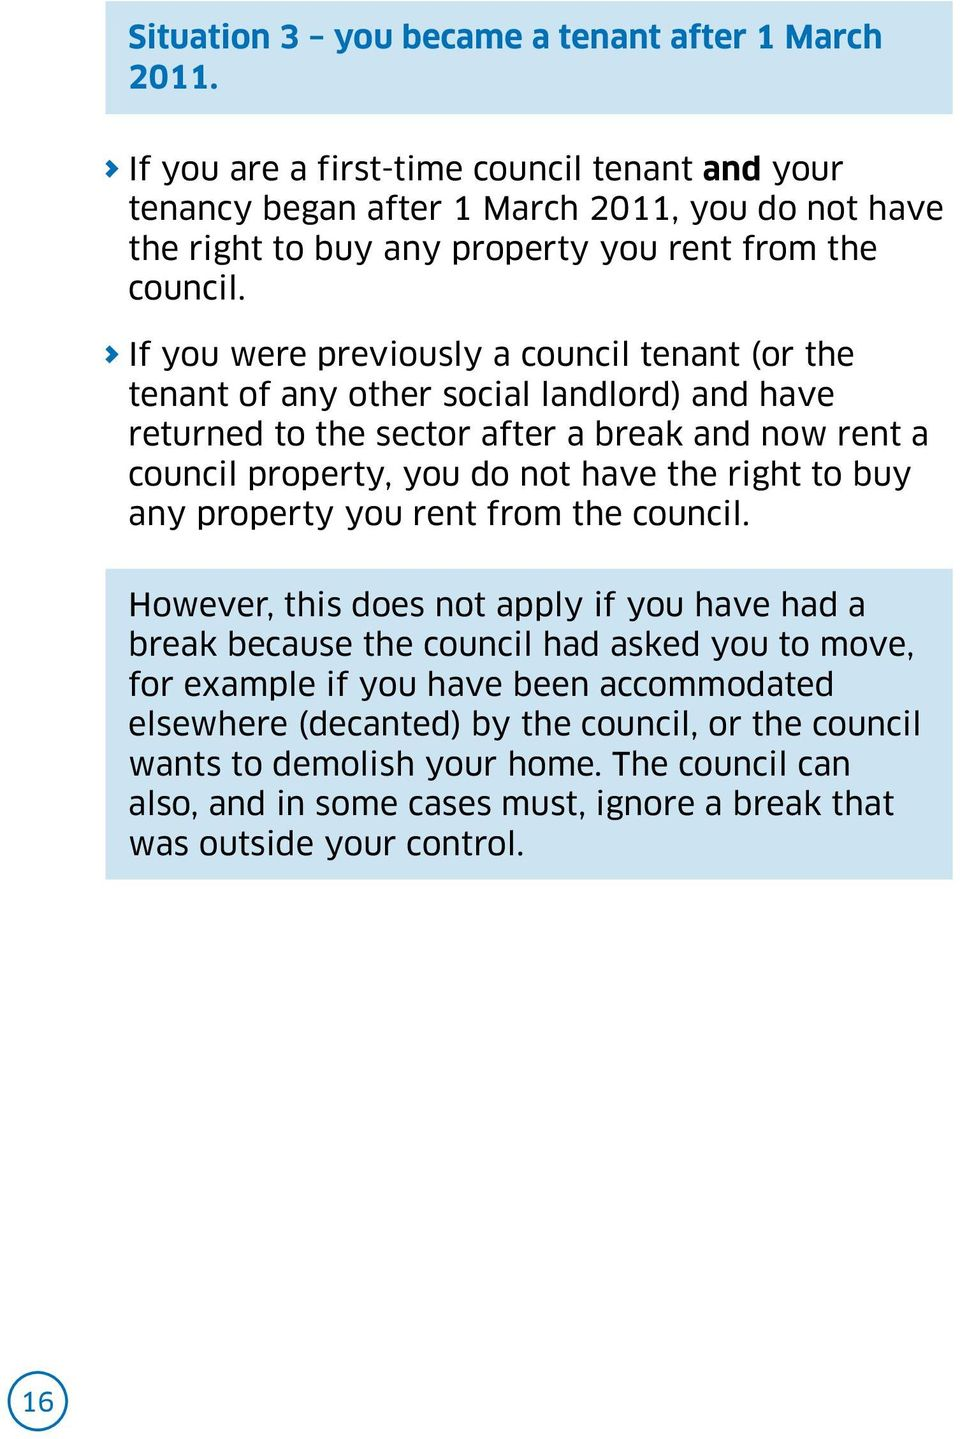 If you were previously a council tenant (or the tenant of any other social landlord) and have returned to the sector after a break and now rent a council property, you do not have the right